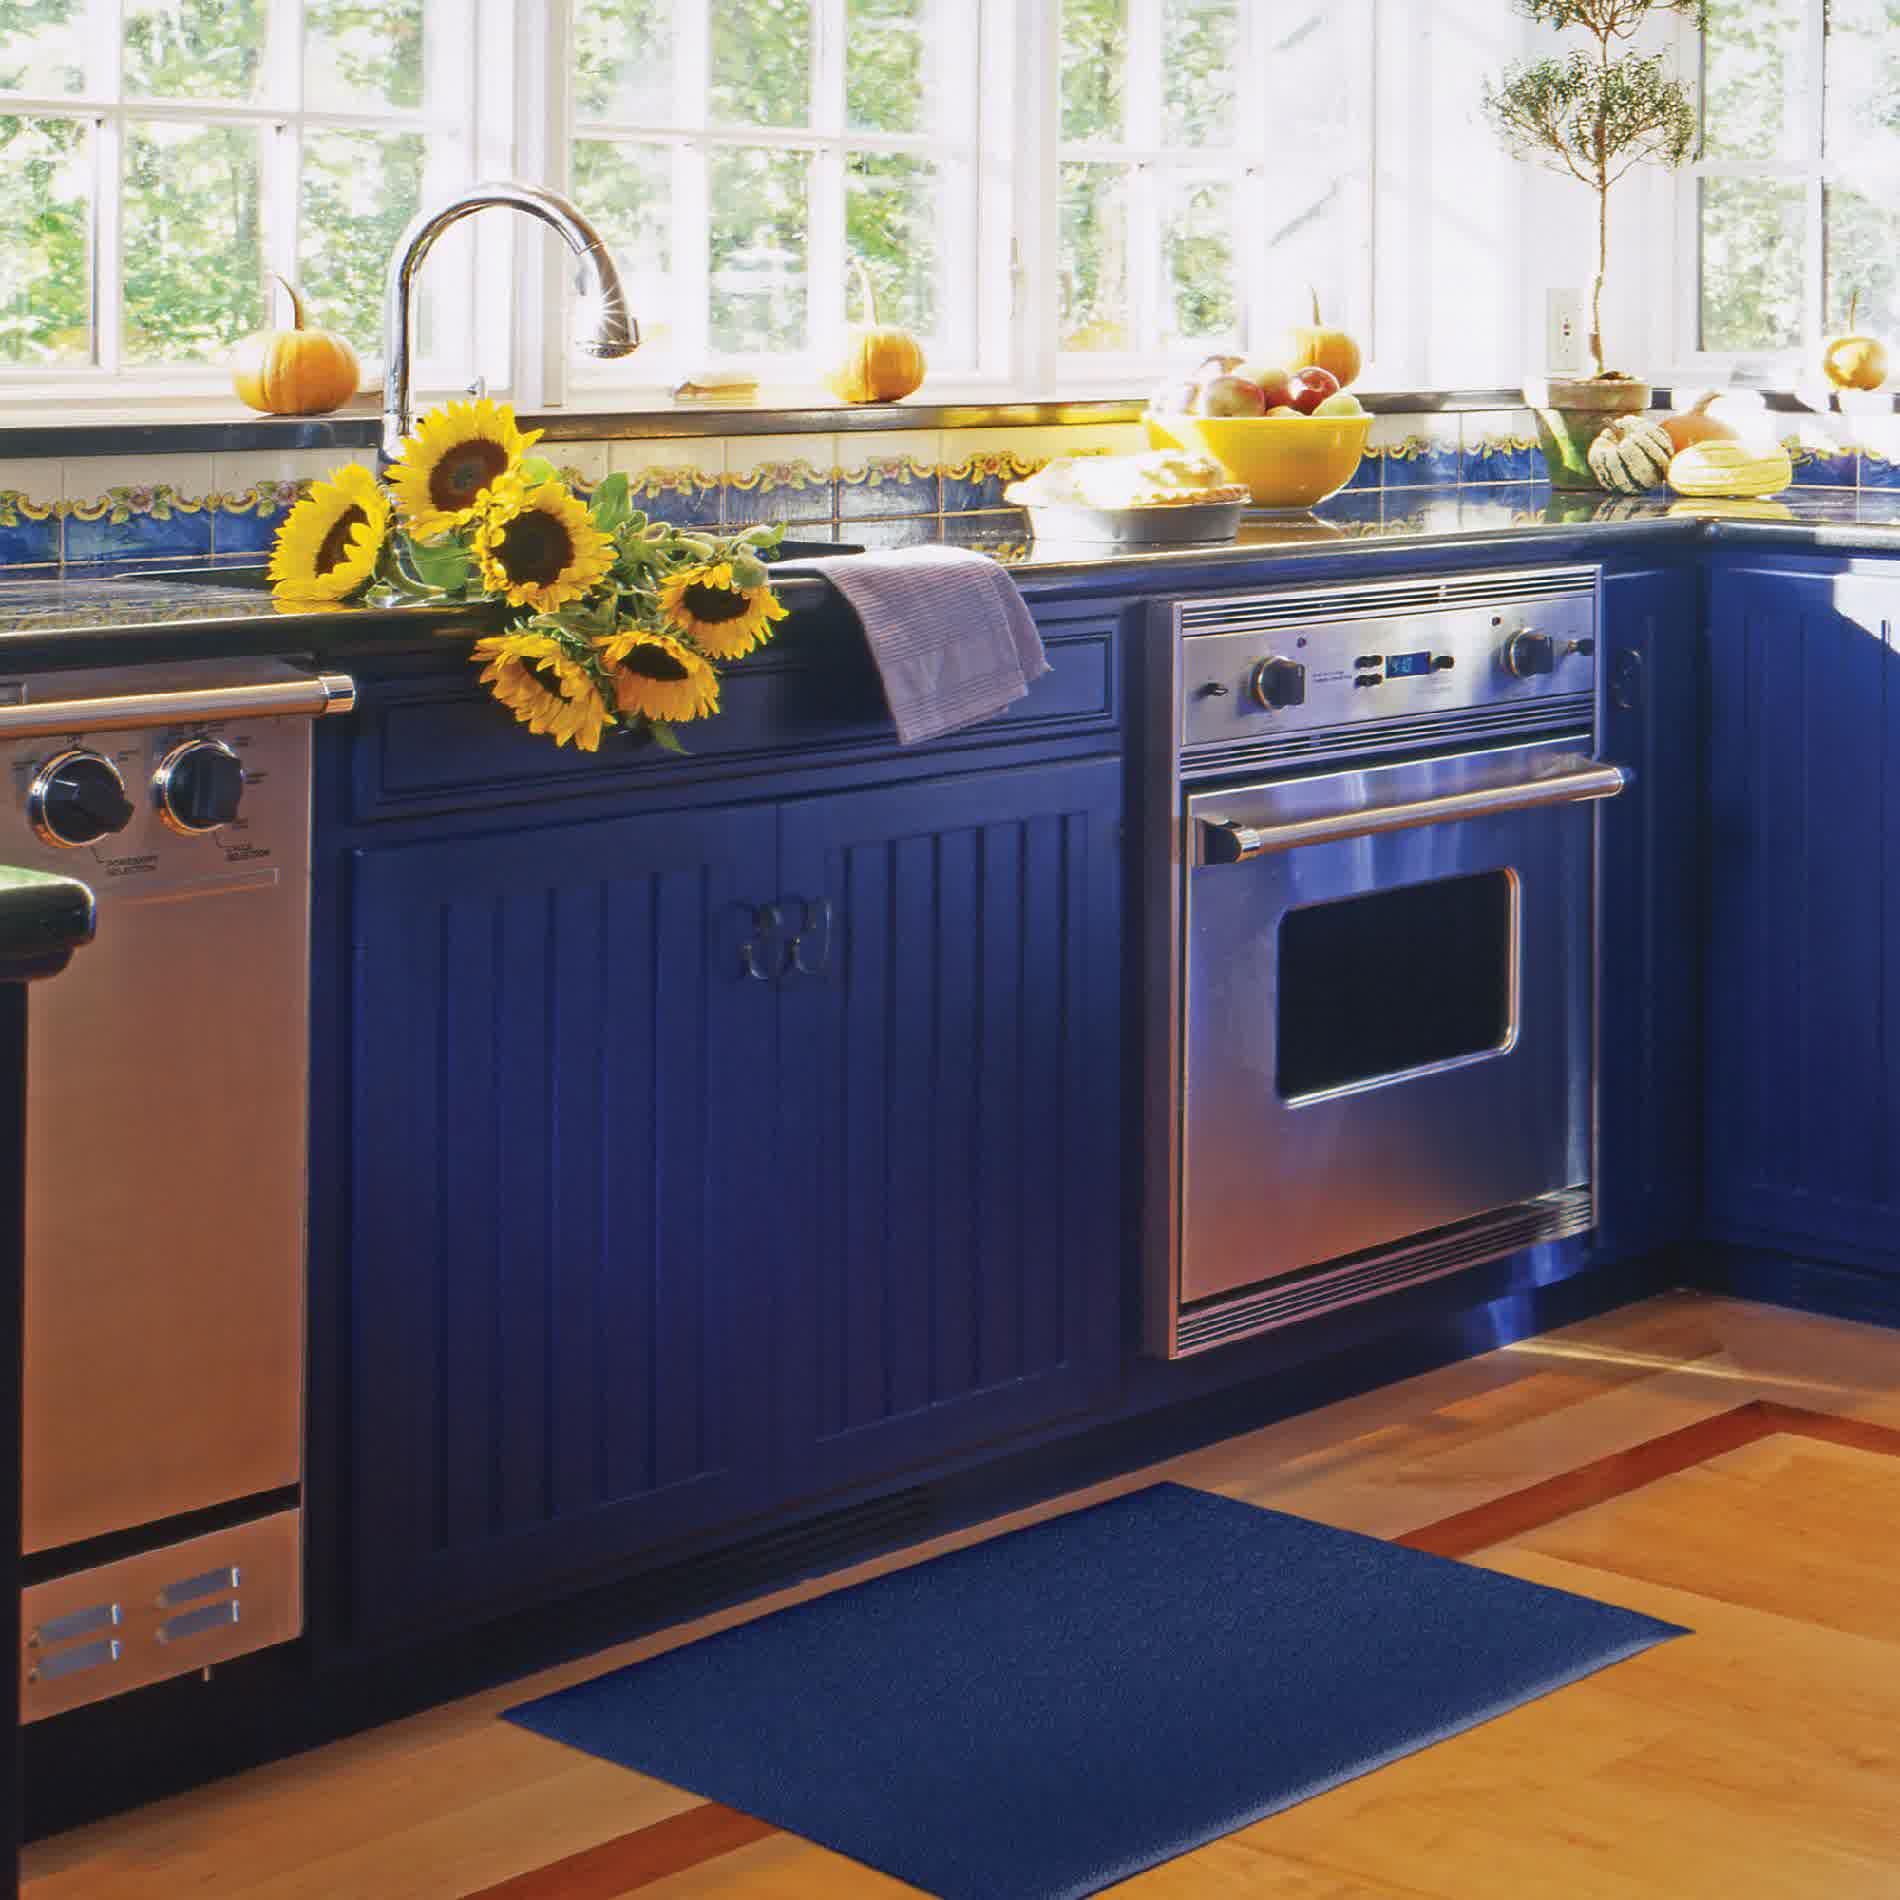 Blue Kitchen Rug: Best Kitchen Rugs And Mats Selections